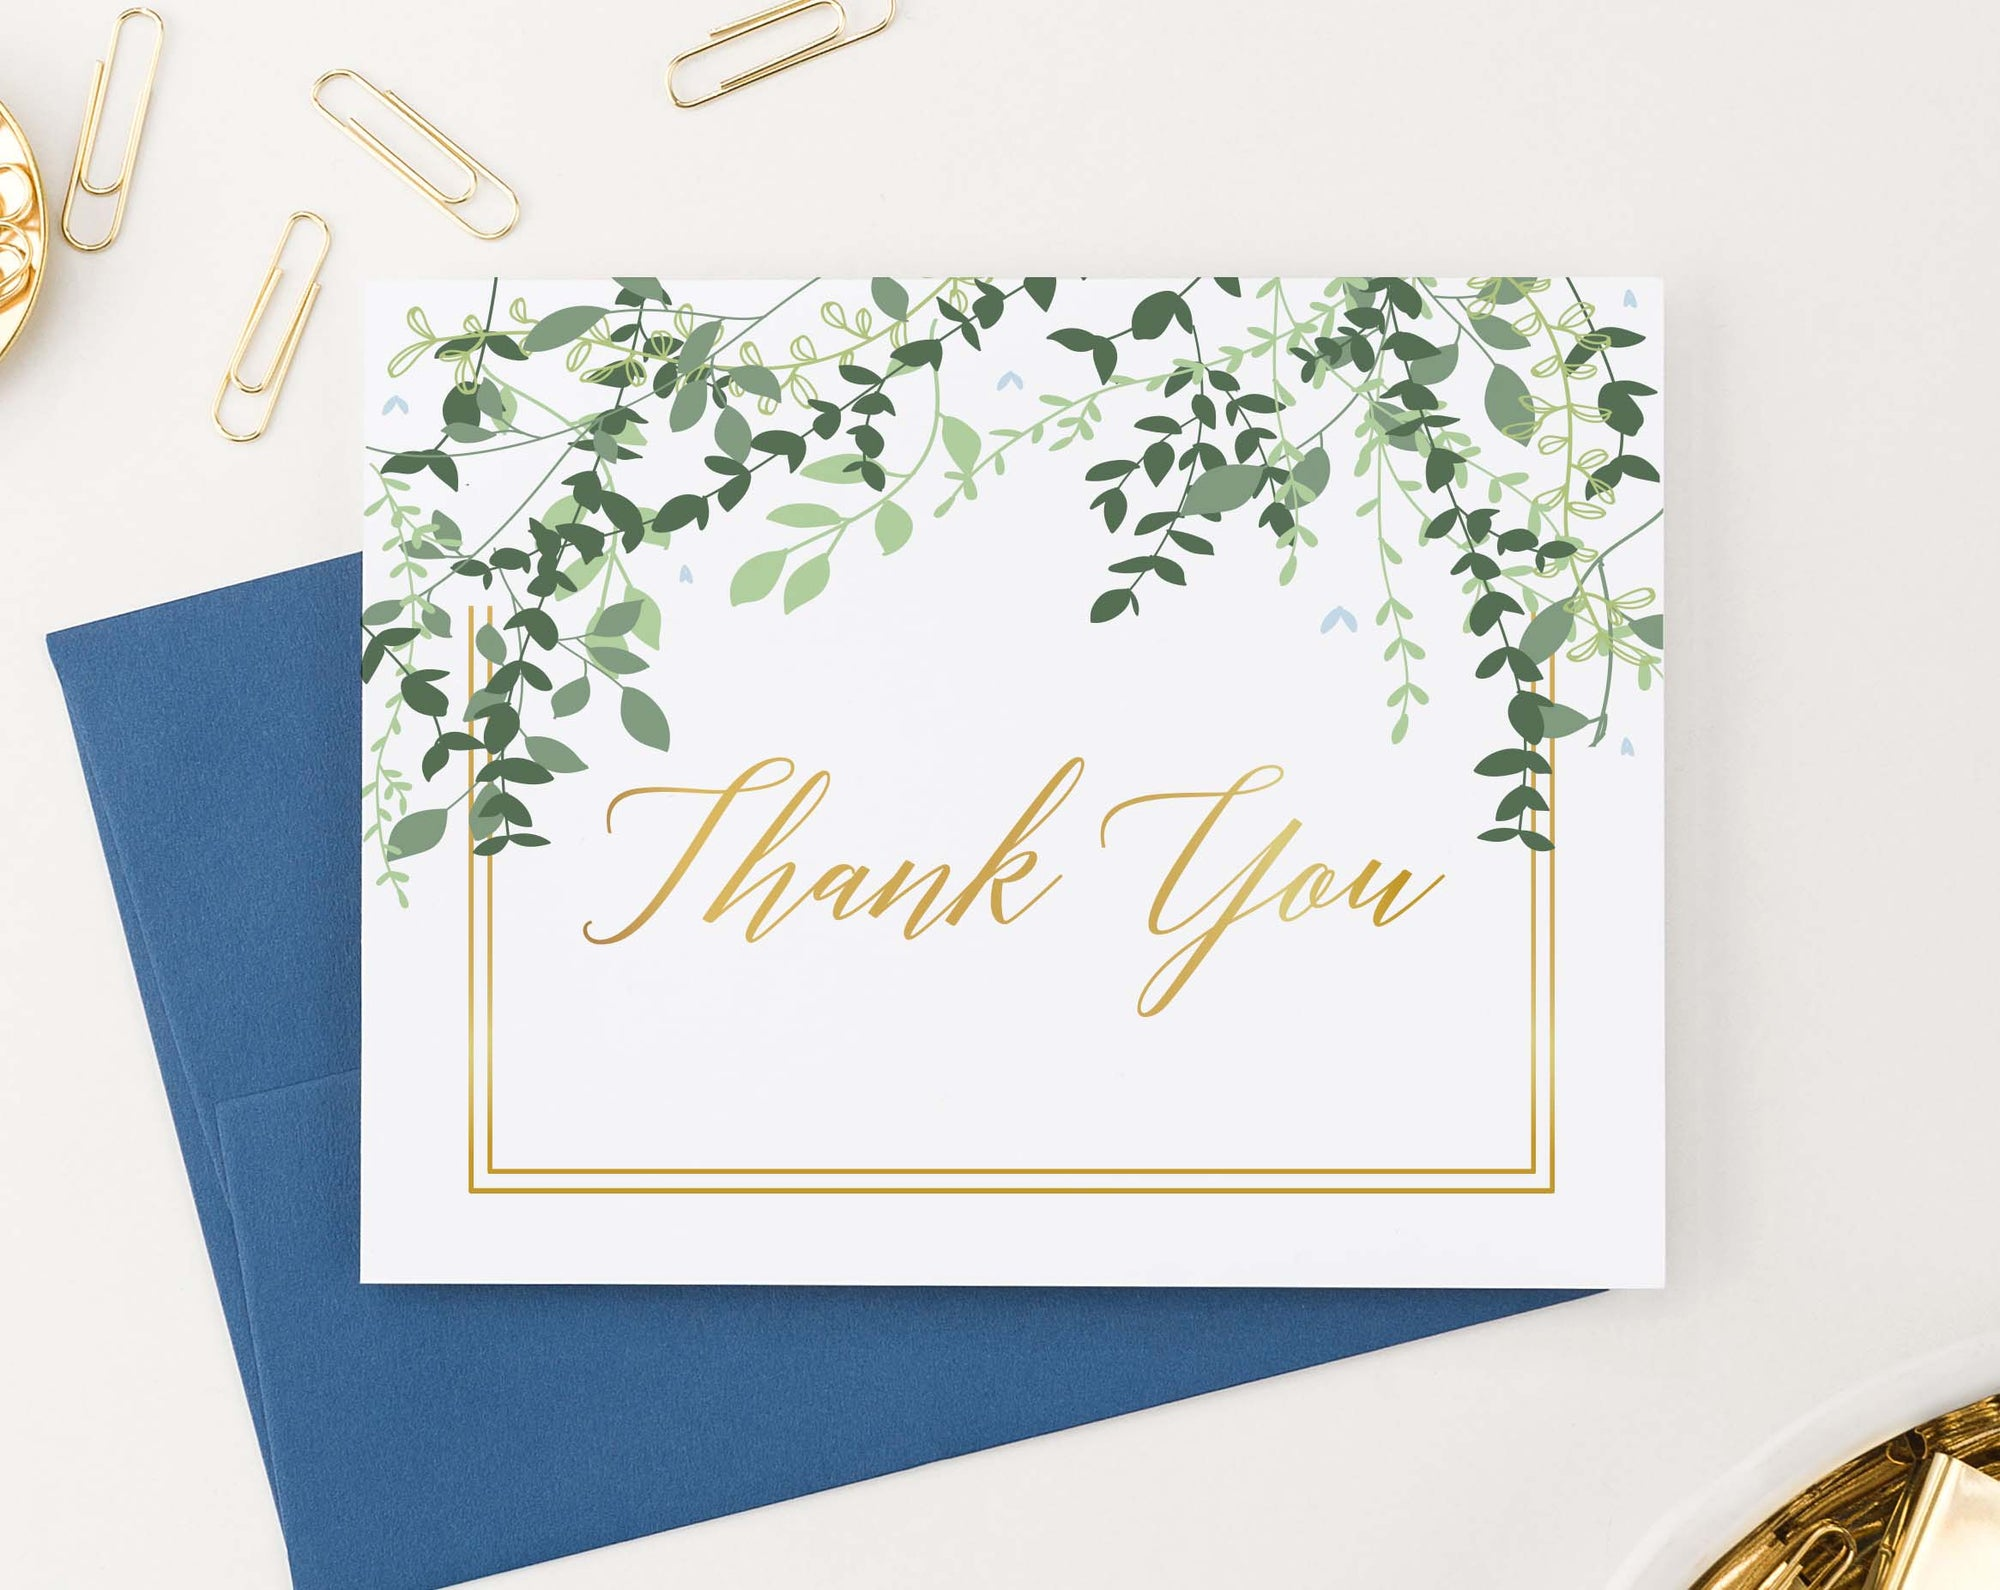 TY036 elegant greenery folded thank you cards for wedding gold border women